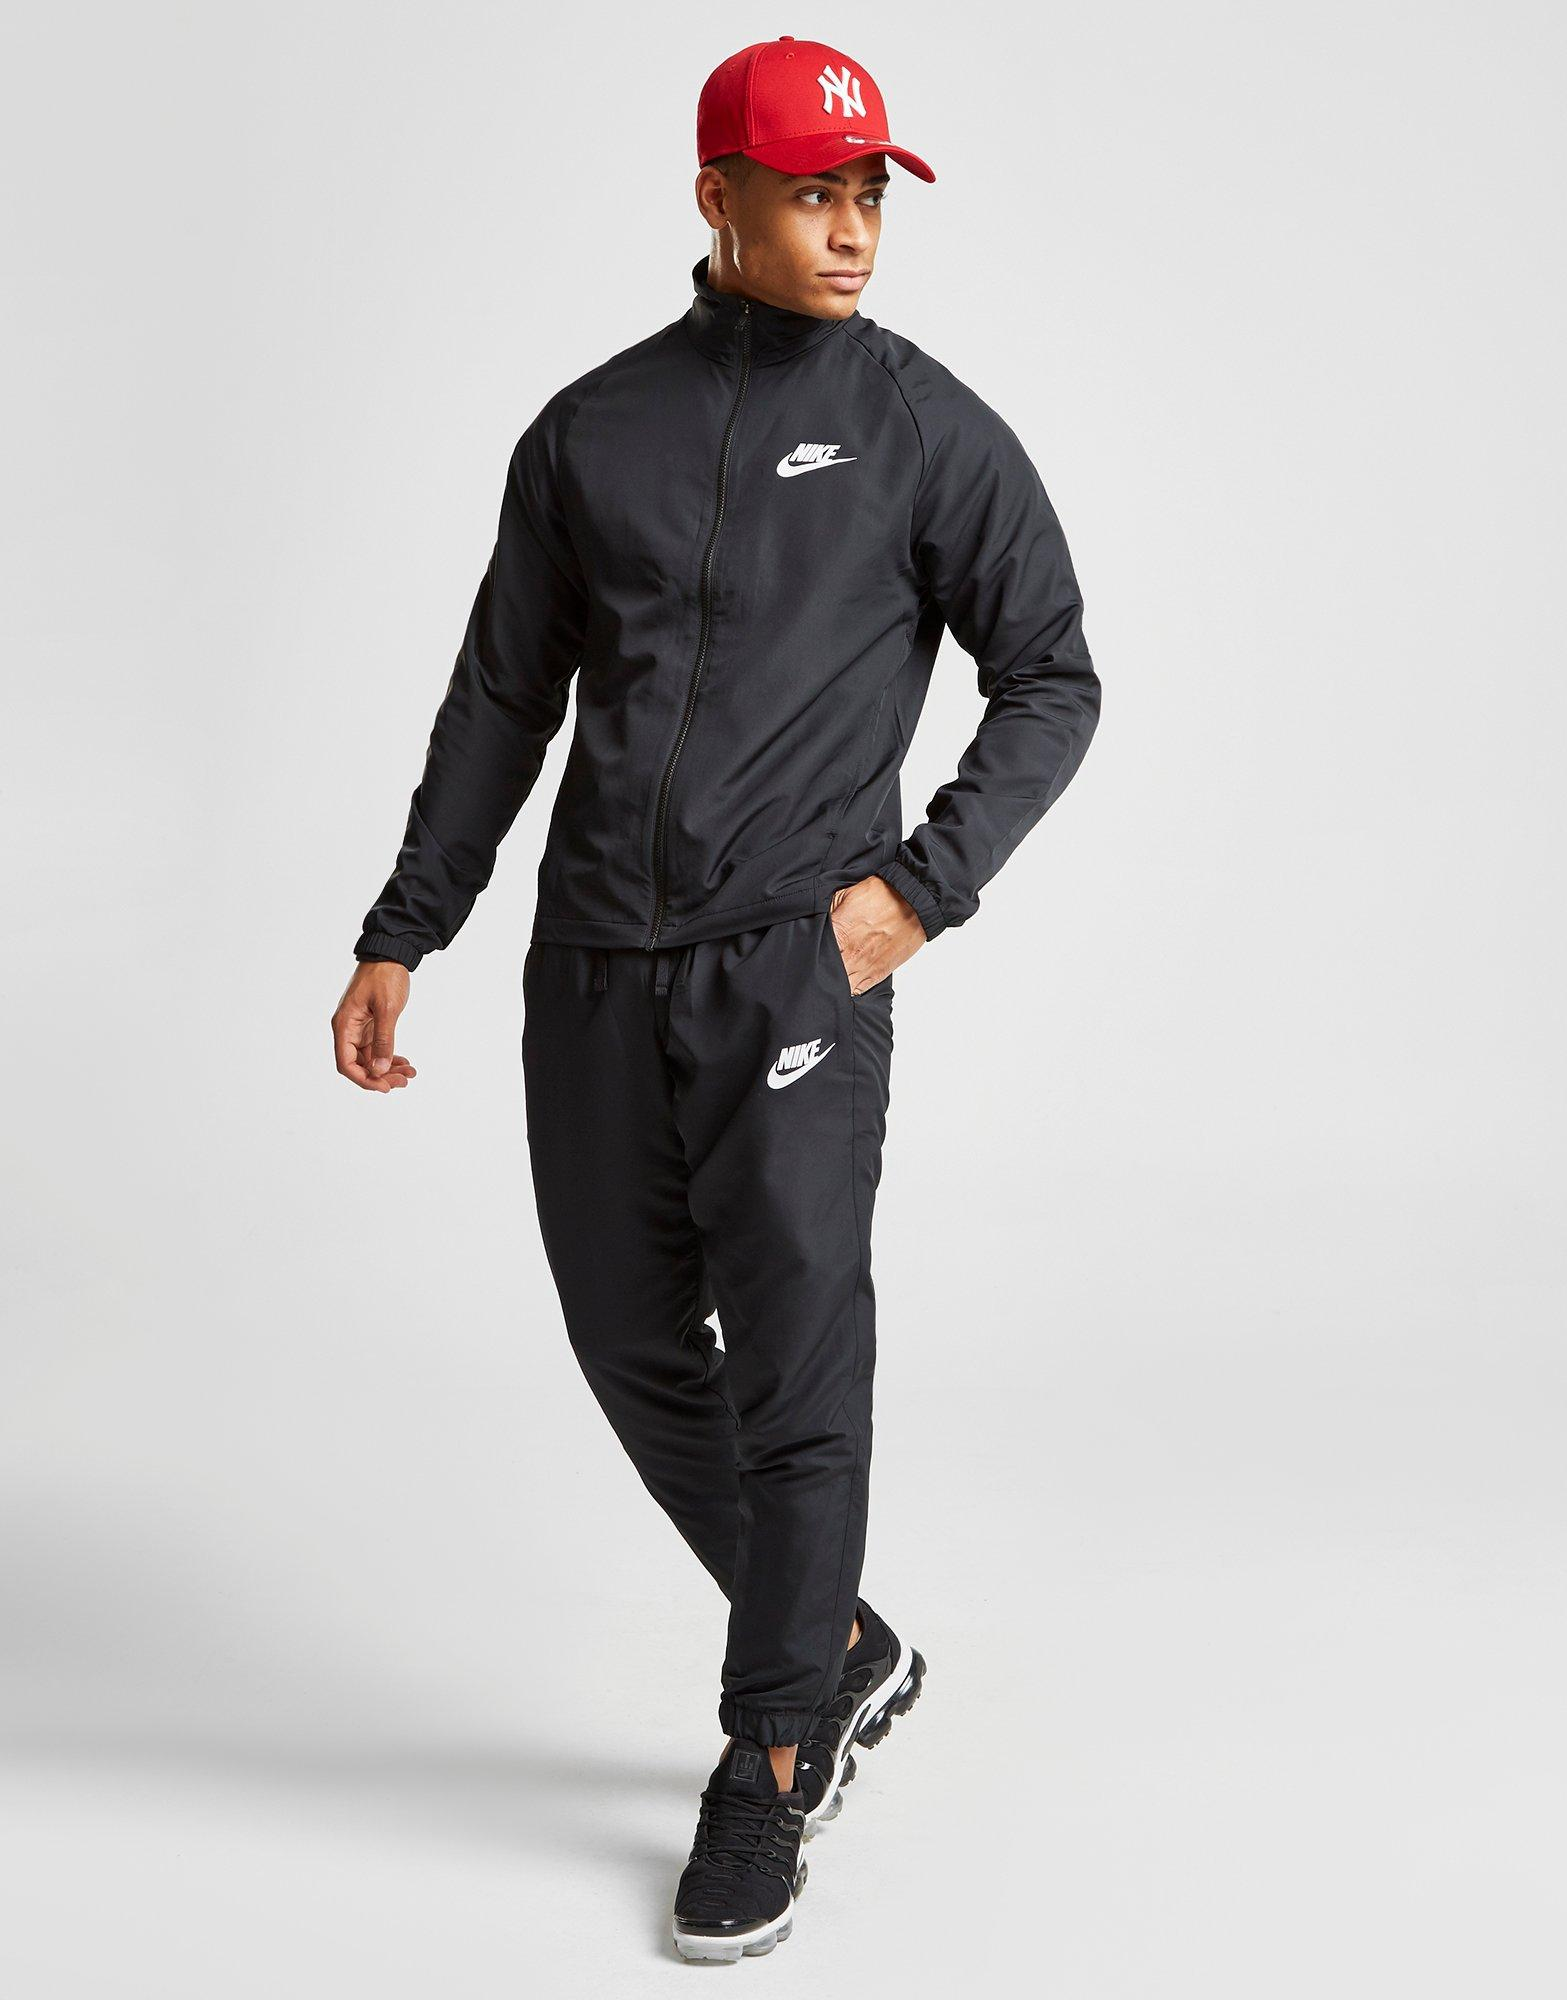 Nike Season 2 Woven Tracksuit | JD Sports Ireland